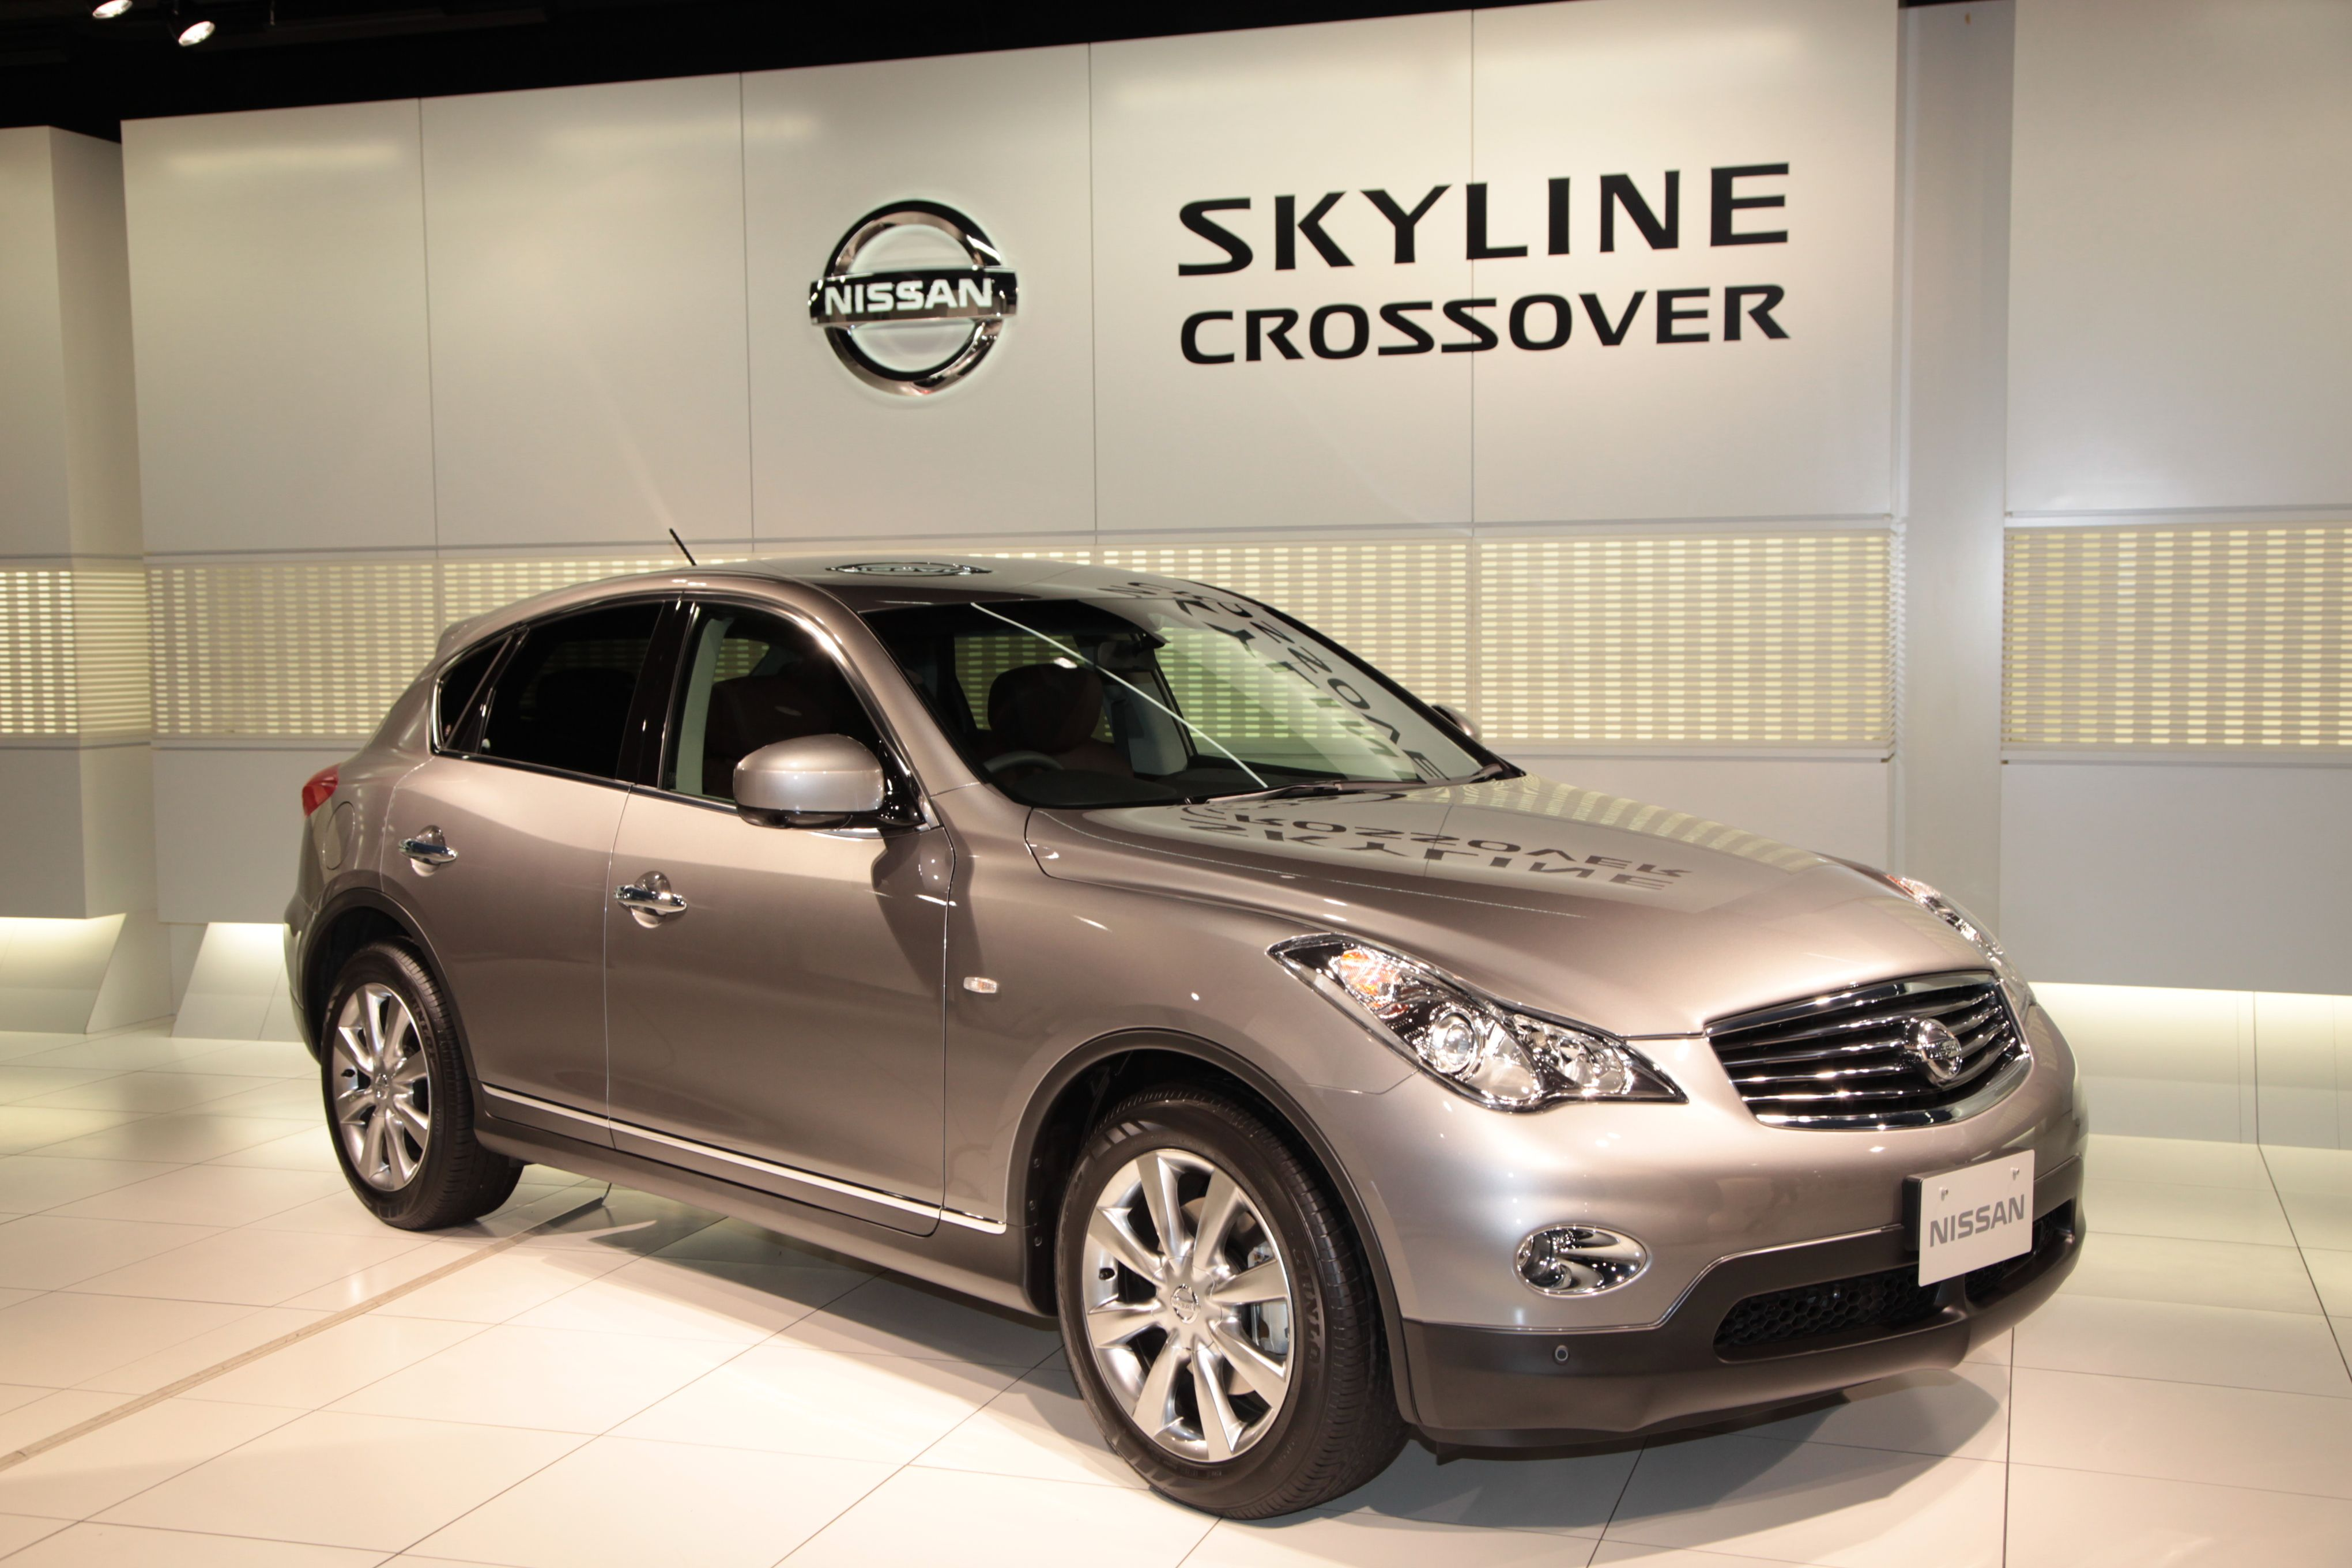 Nissan Skyline Crossover 2009 - now SUV 5 door #5